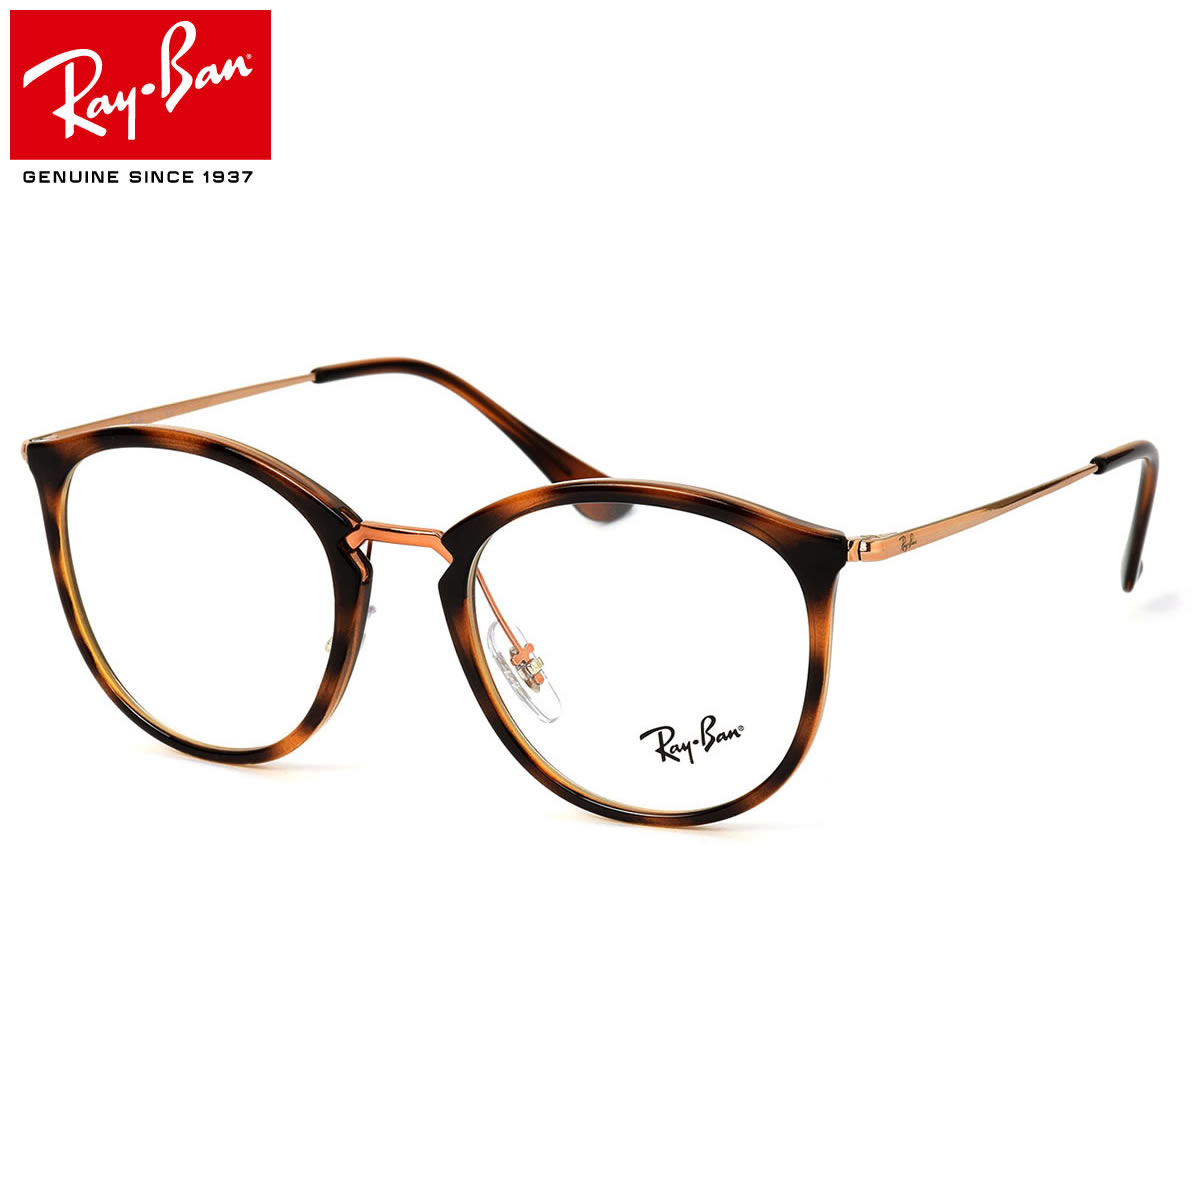 faf8c1e38c Ray-Ban Unisex RX7140 Eyeglasses Trasparent 51mm Holiday presents